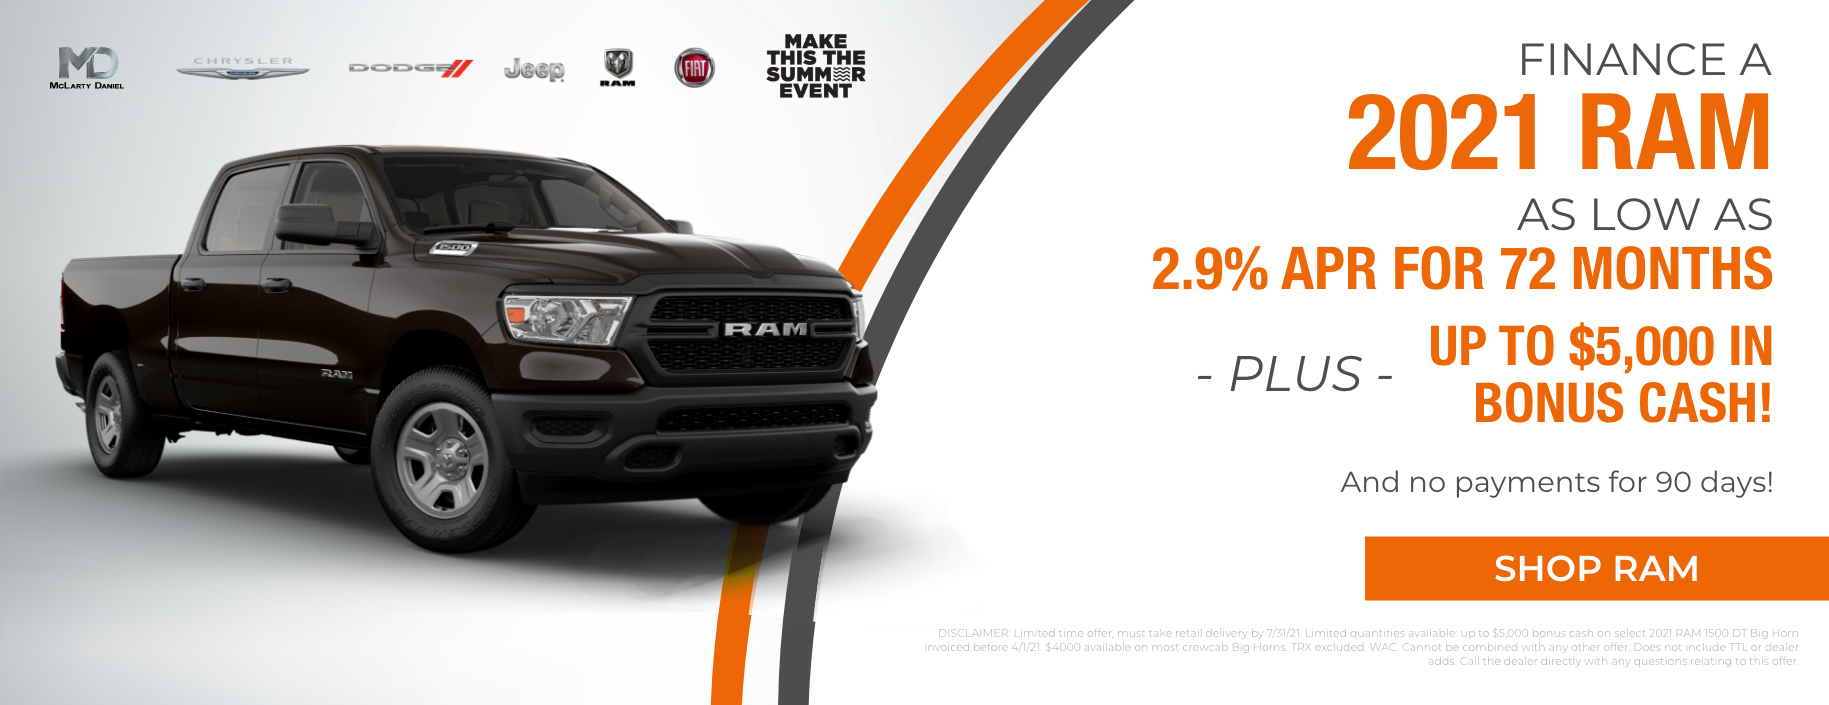 Finance a 2021 RAM as low as 2.9% APR for 72 months plus up to $5,000 in bonus cash! 90 days to first payment!